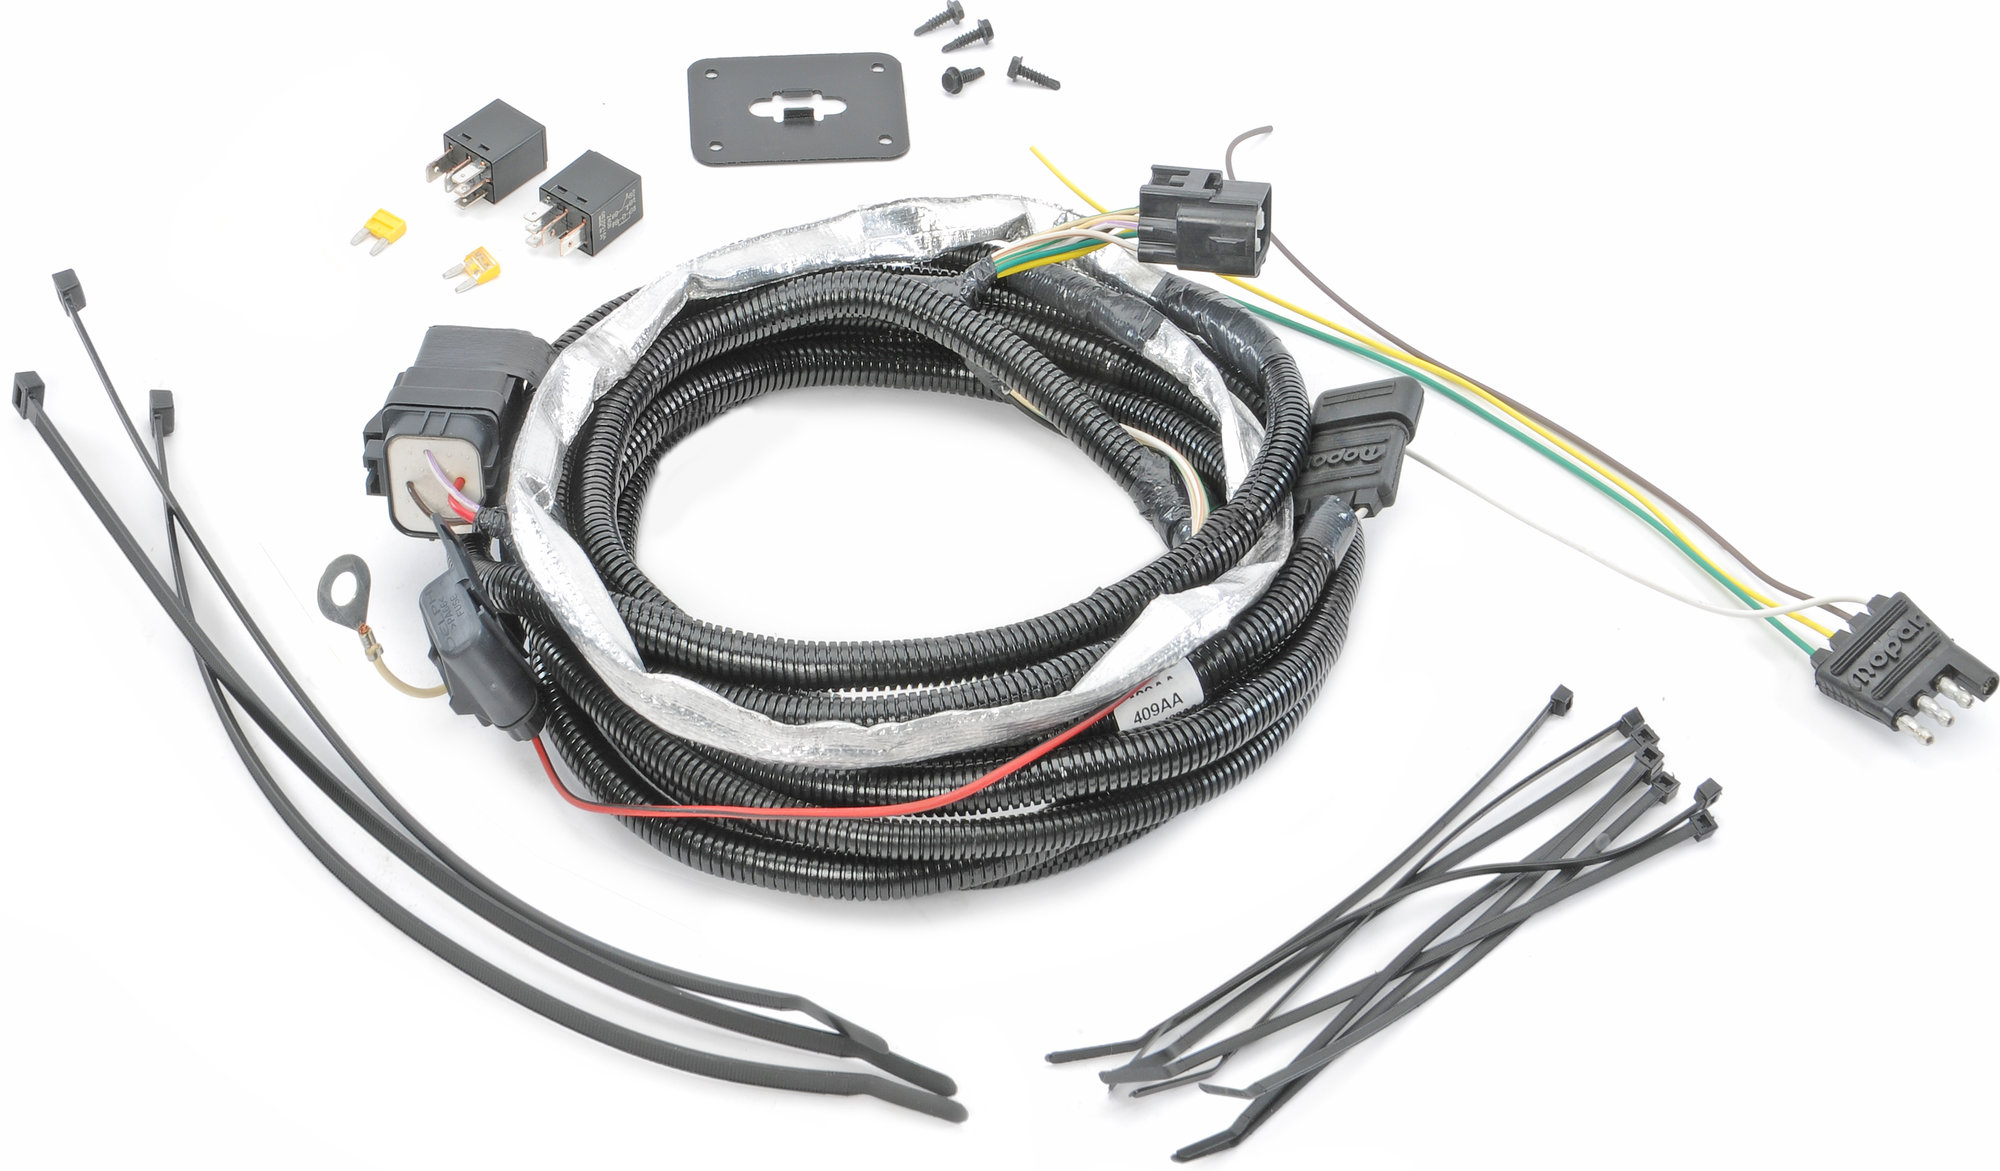 Mopar® 82209770AB 4-Way Flat Hitch Wiring Harness for 05